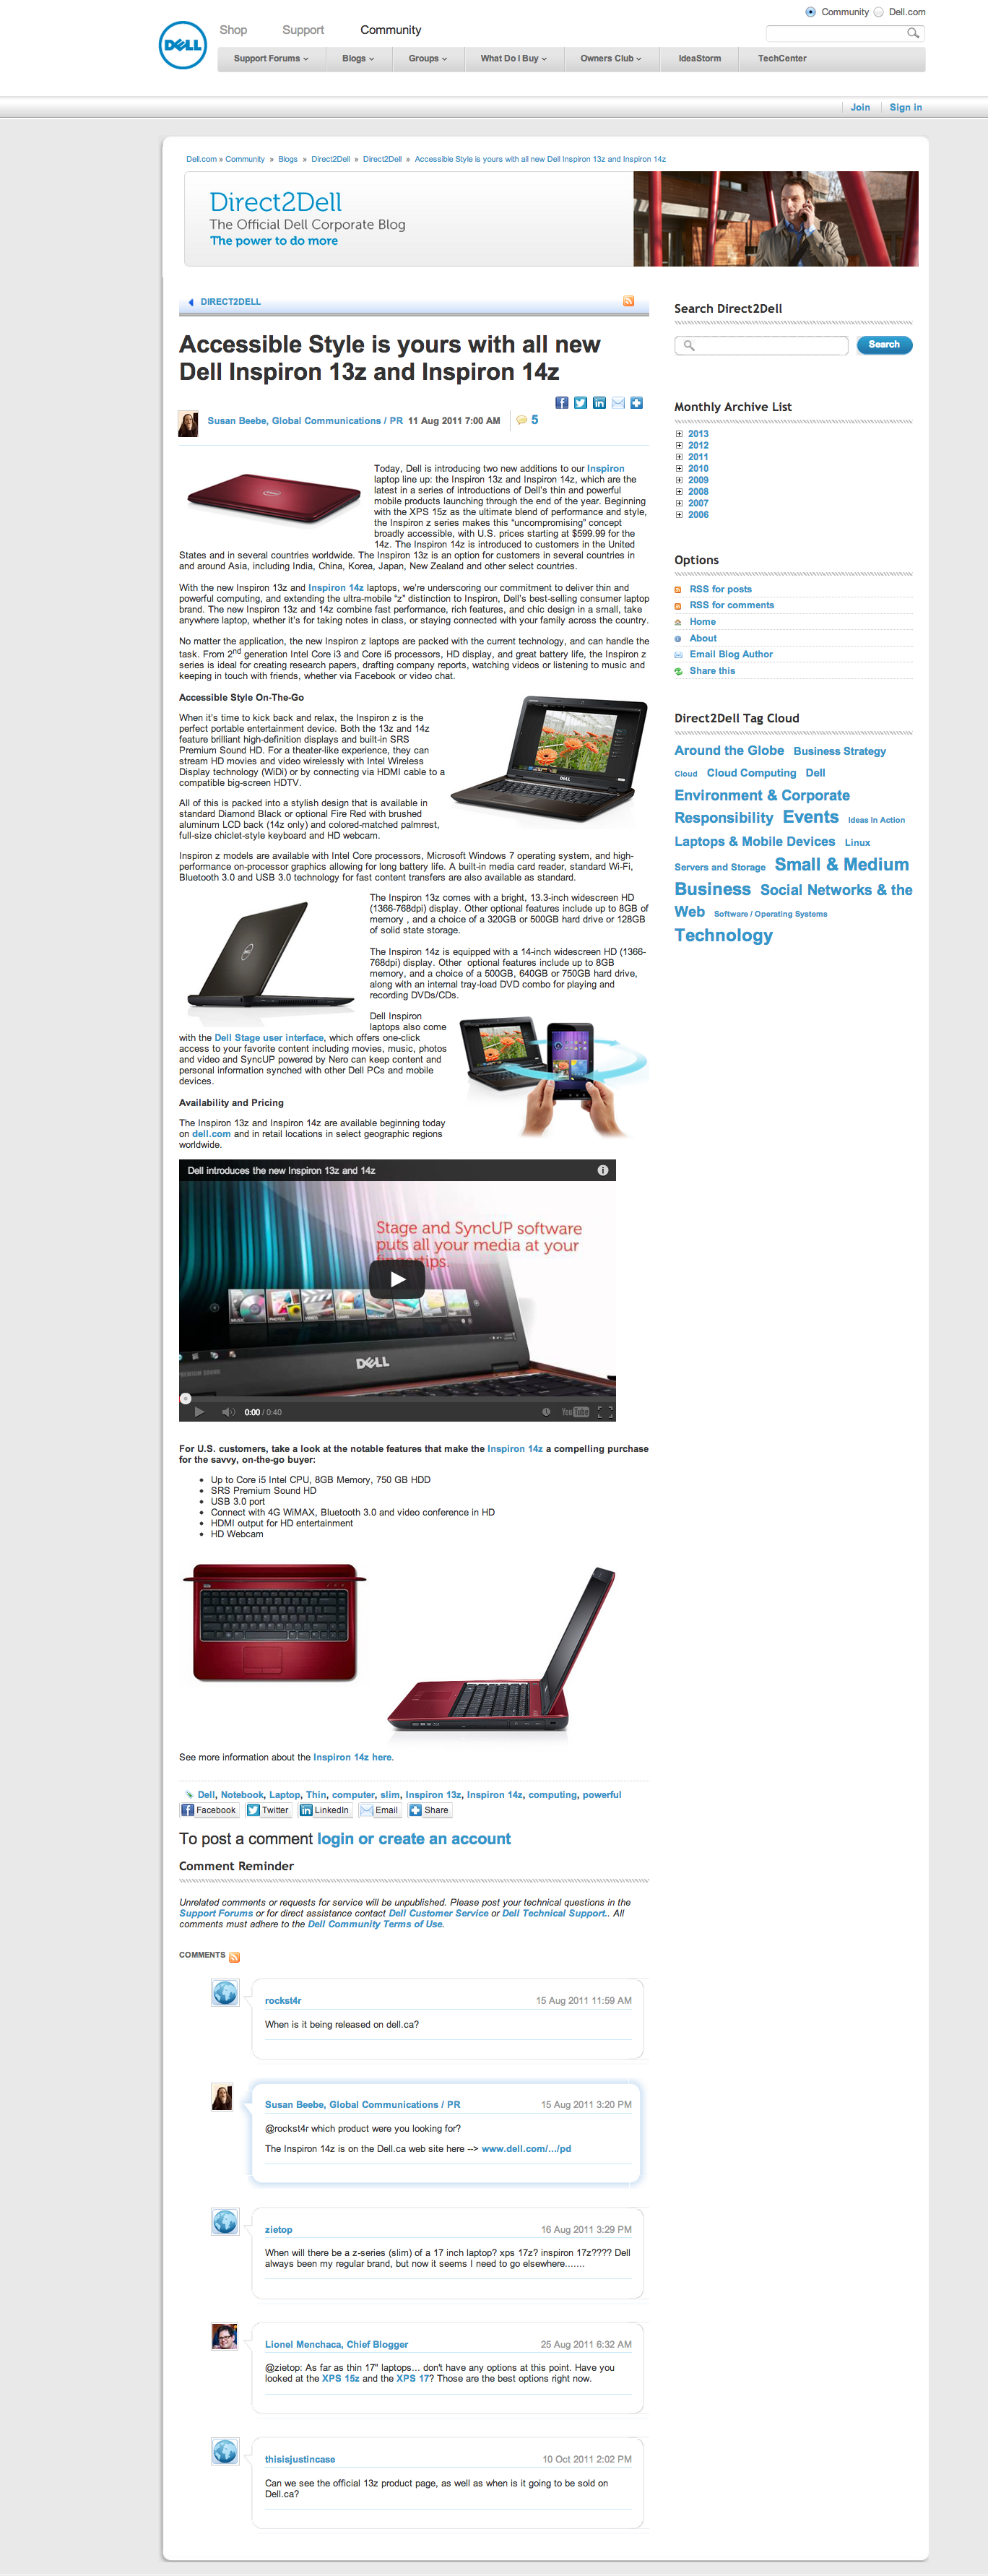 Accessible Style is yours with all new Dell Inspiron 13z and Inspiron 14z